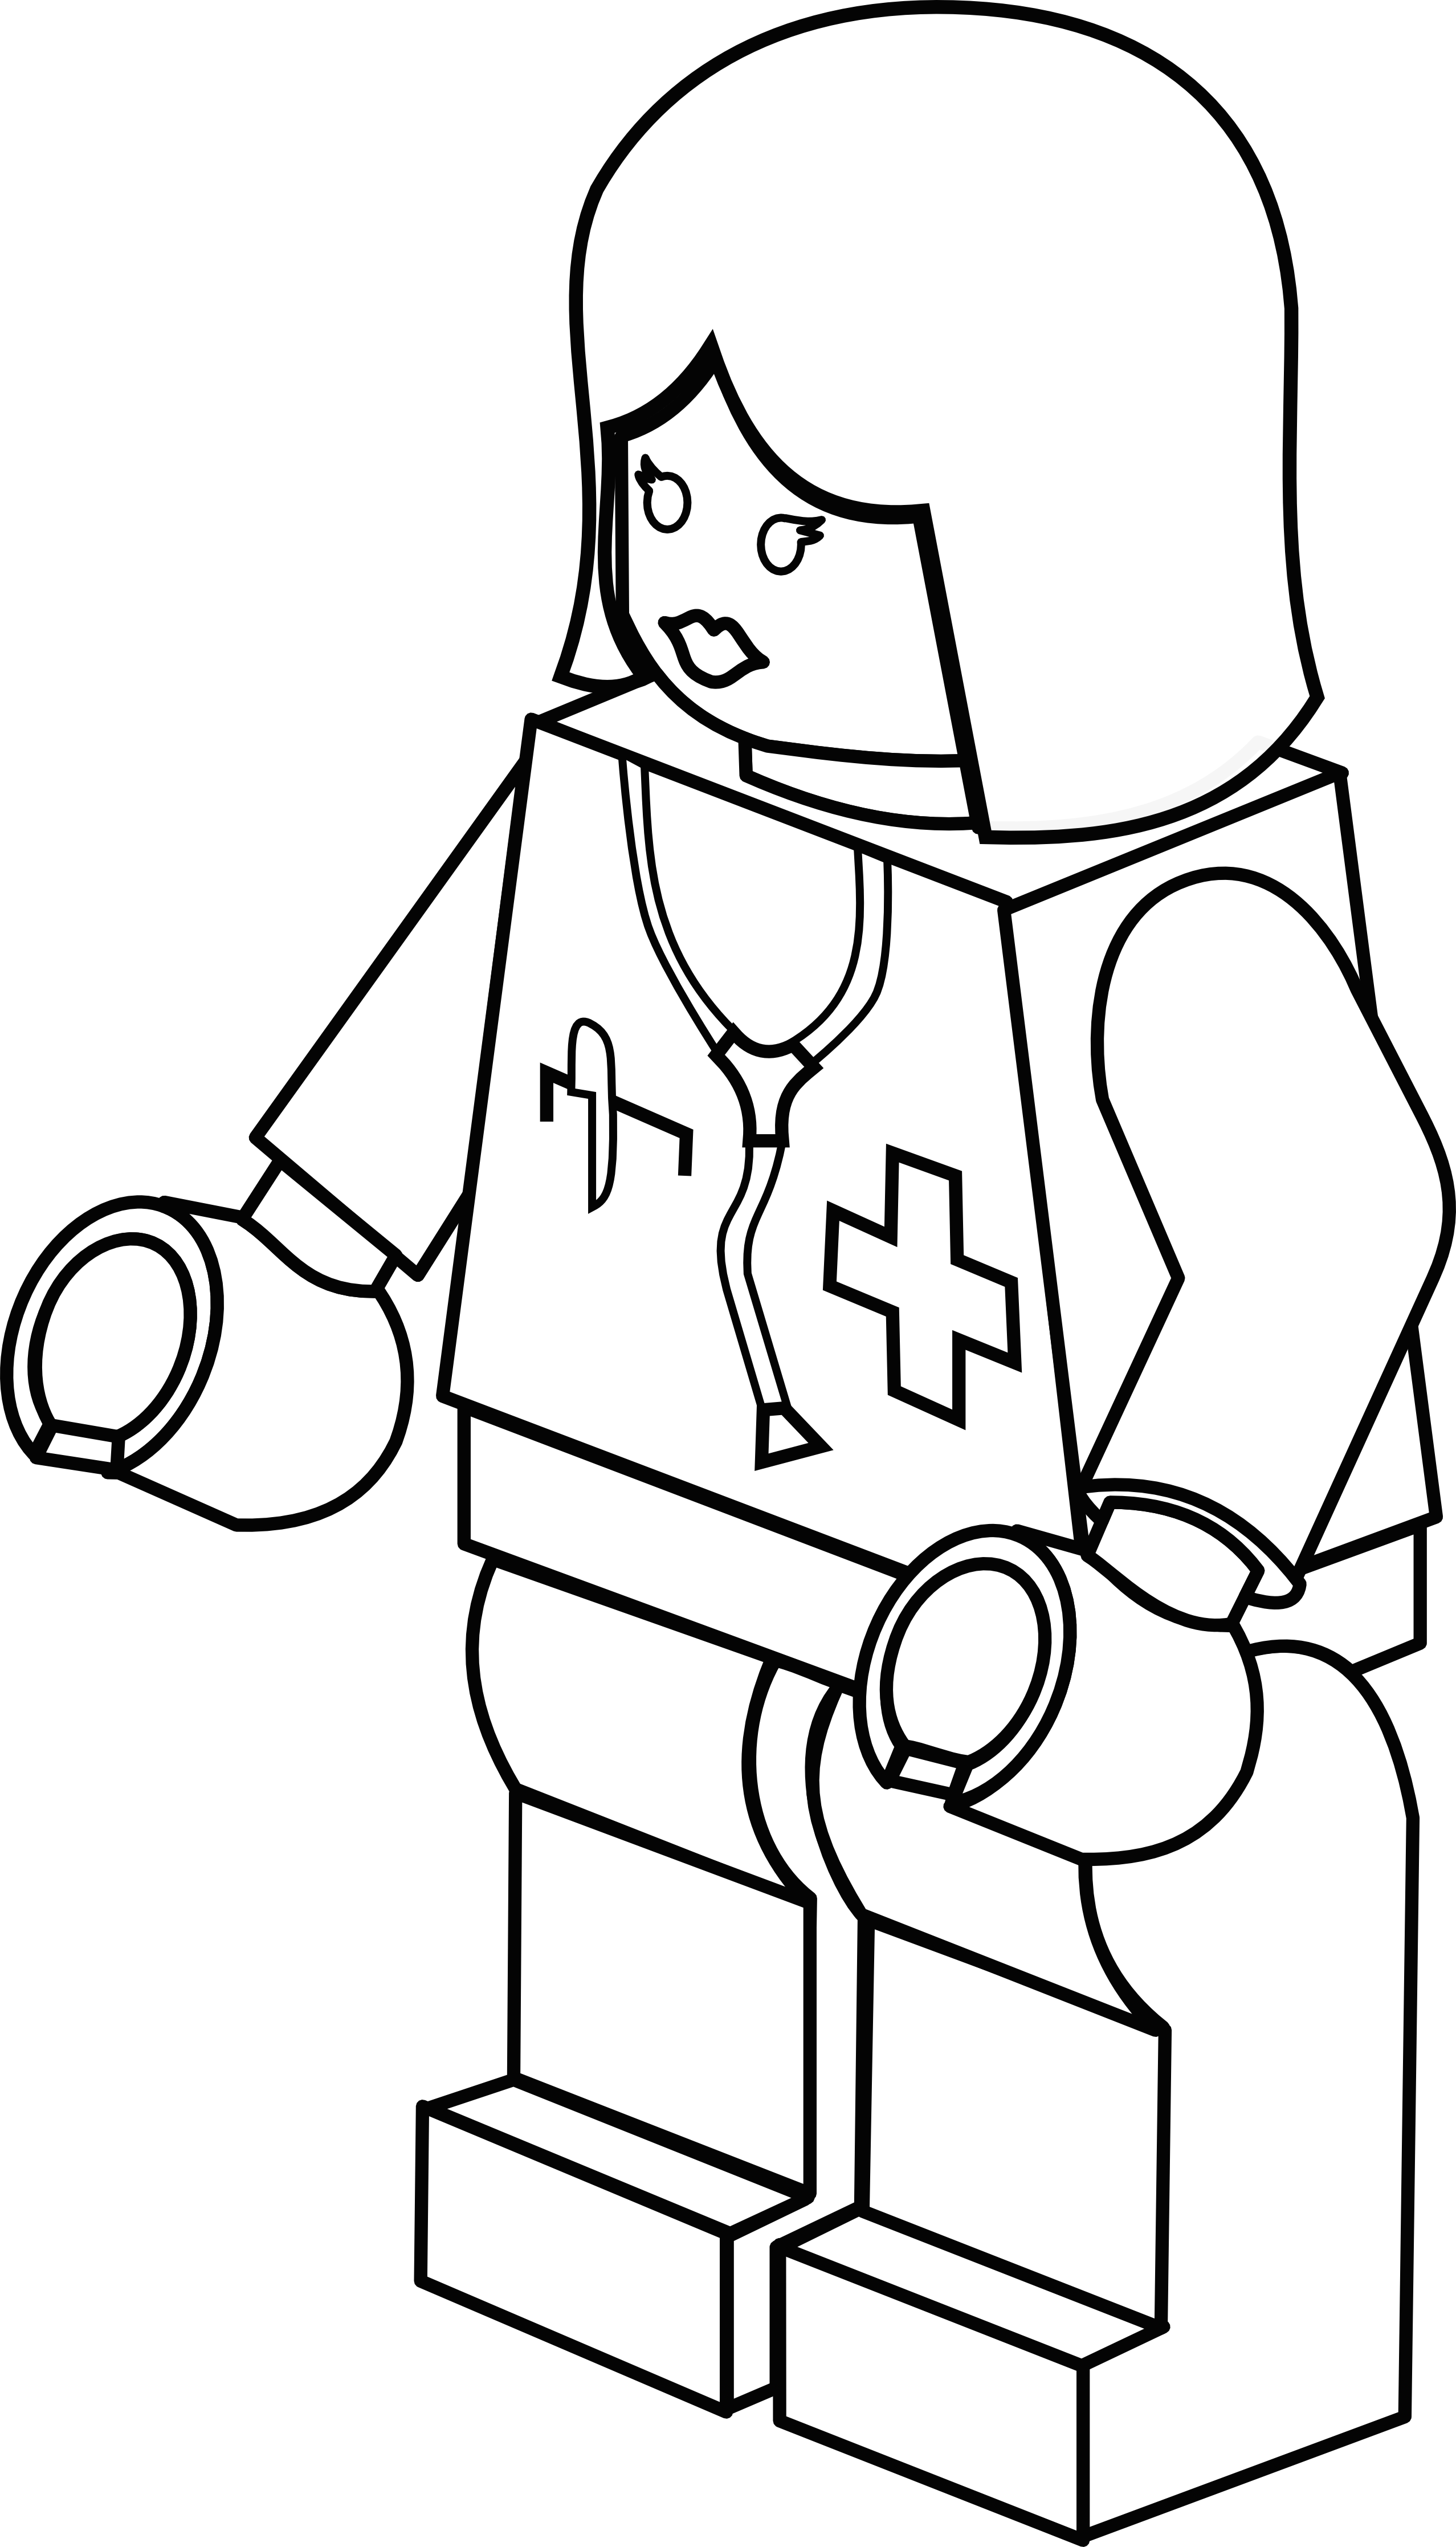 Legos clipart black and white. Images of lego spacehero